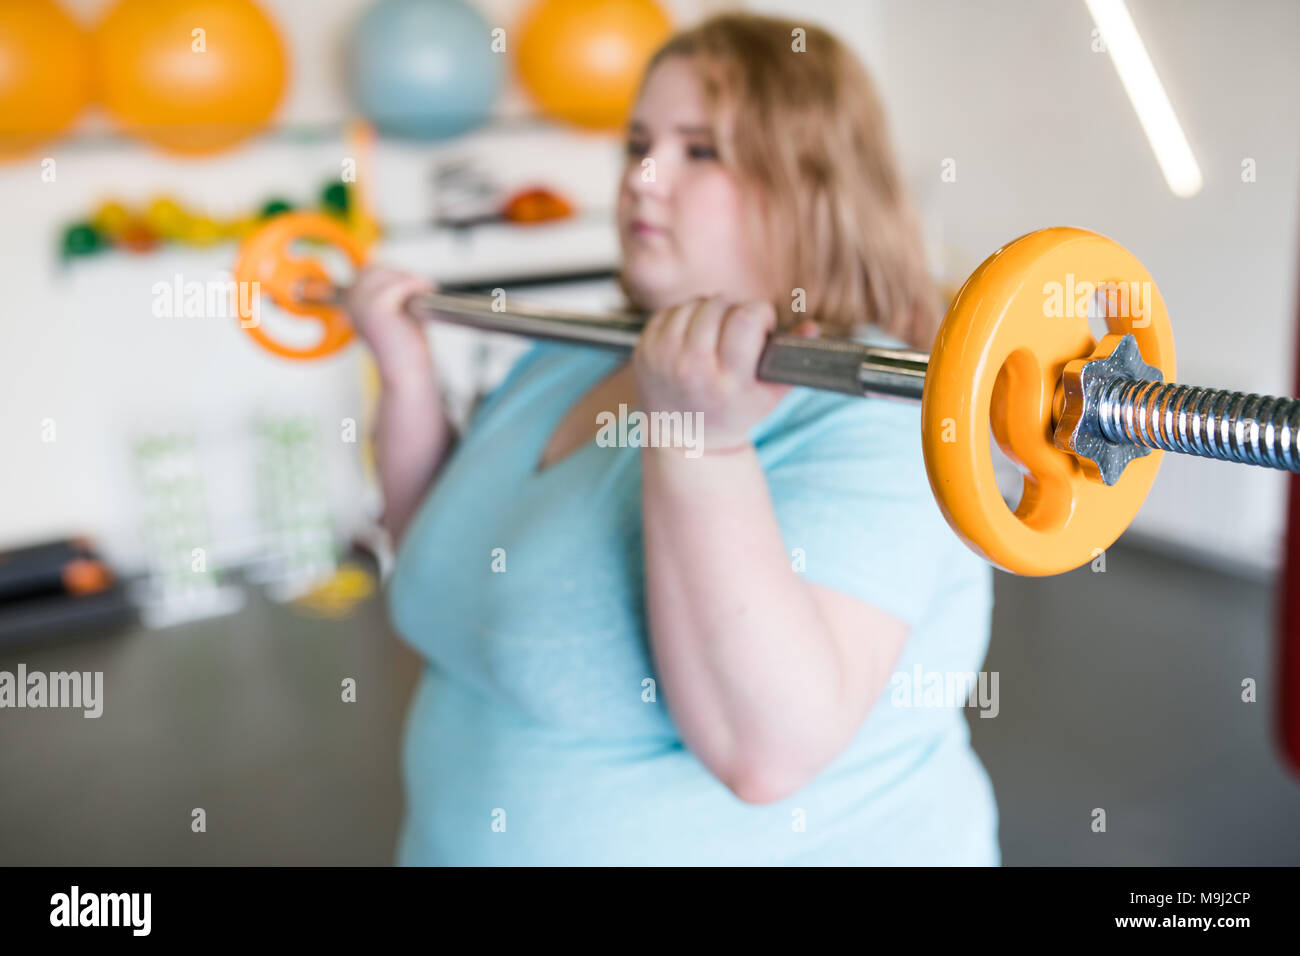 Obese Woman Working Out with Barbell - Stock Image